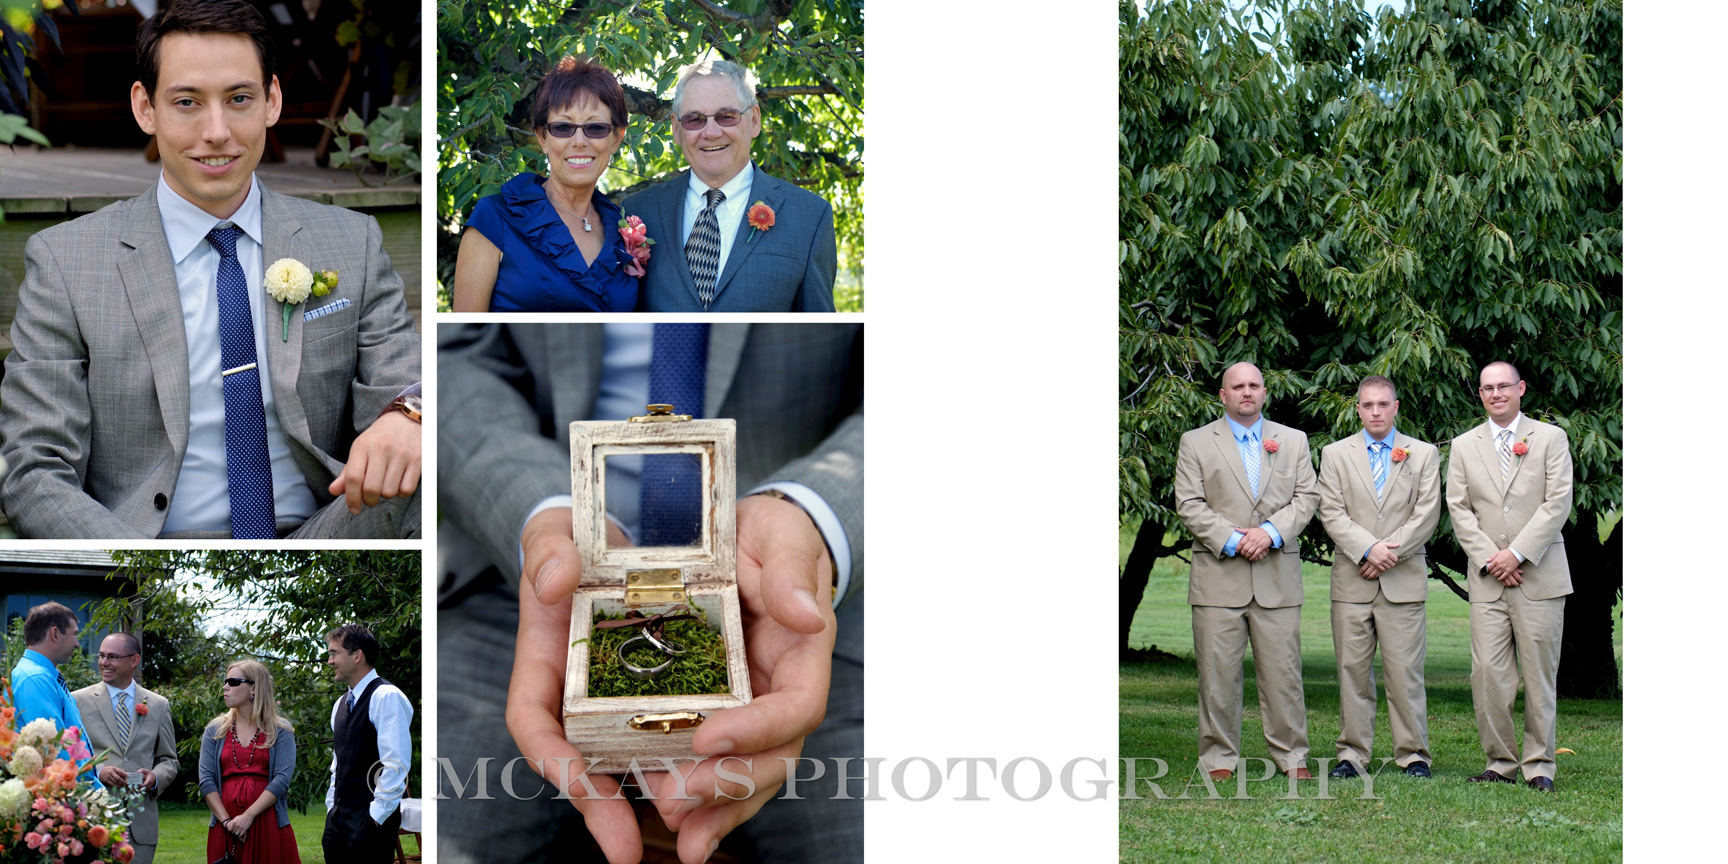 Hurd Orchards wedding photo album